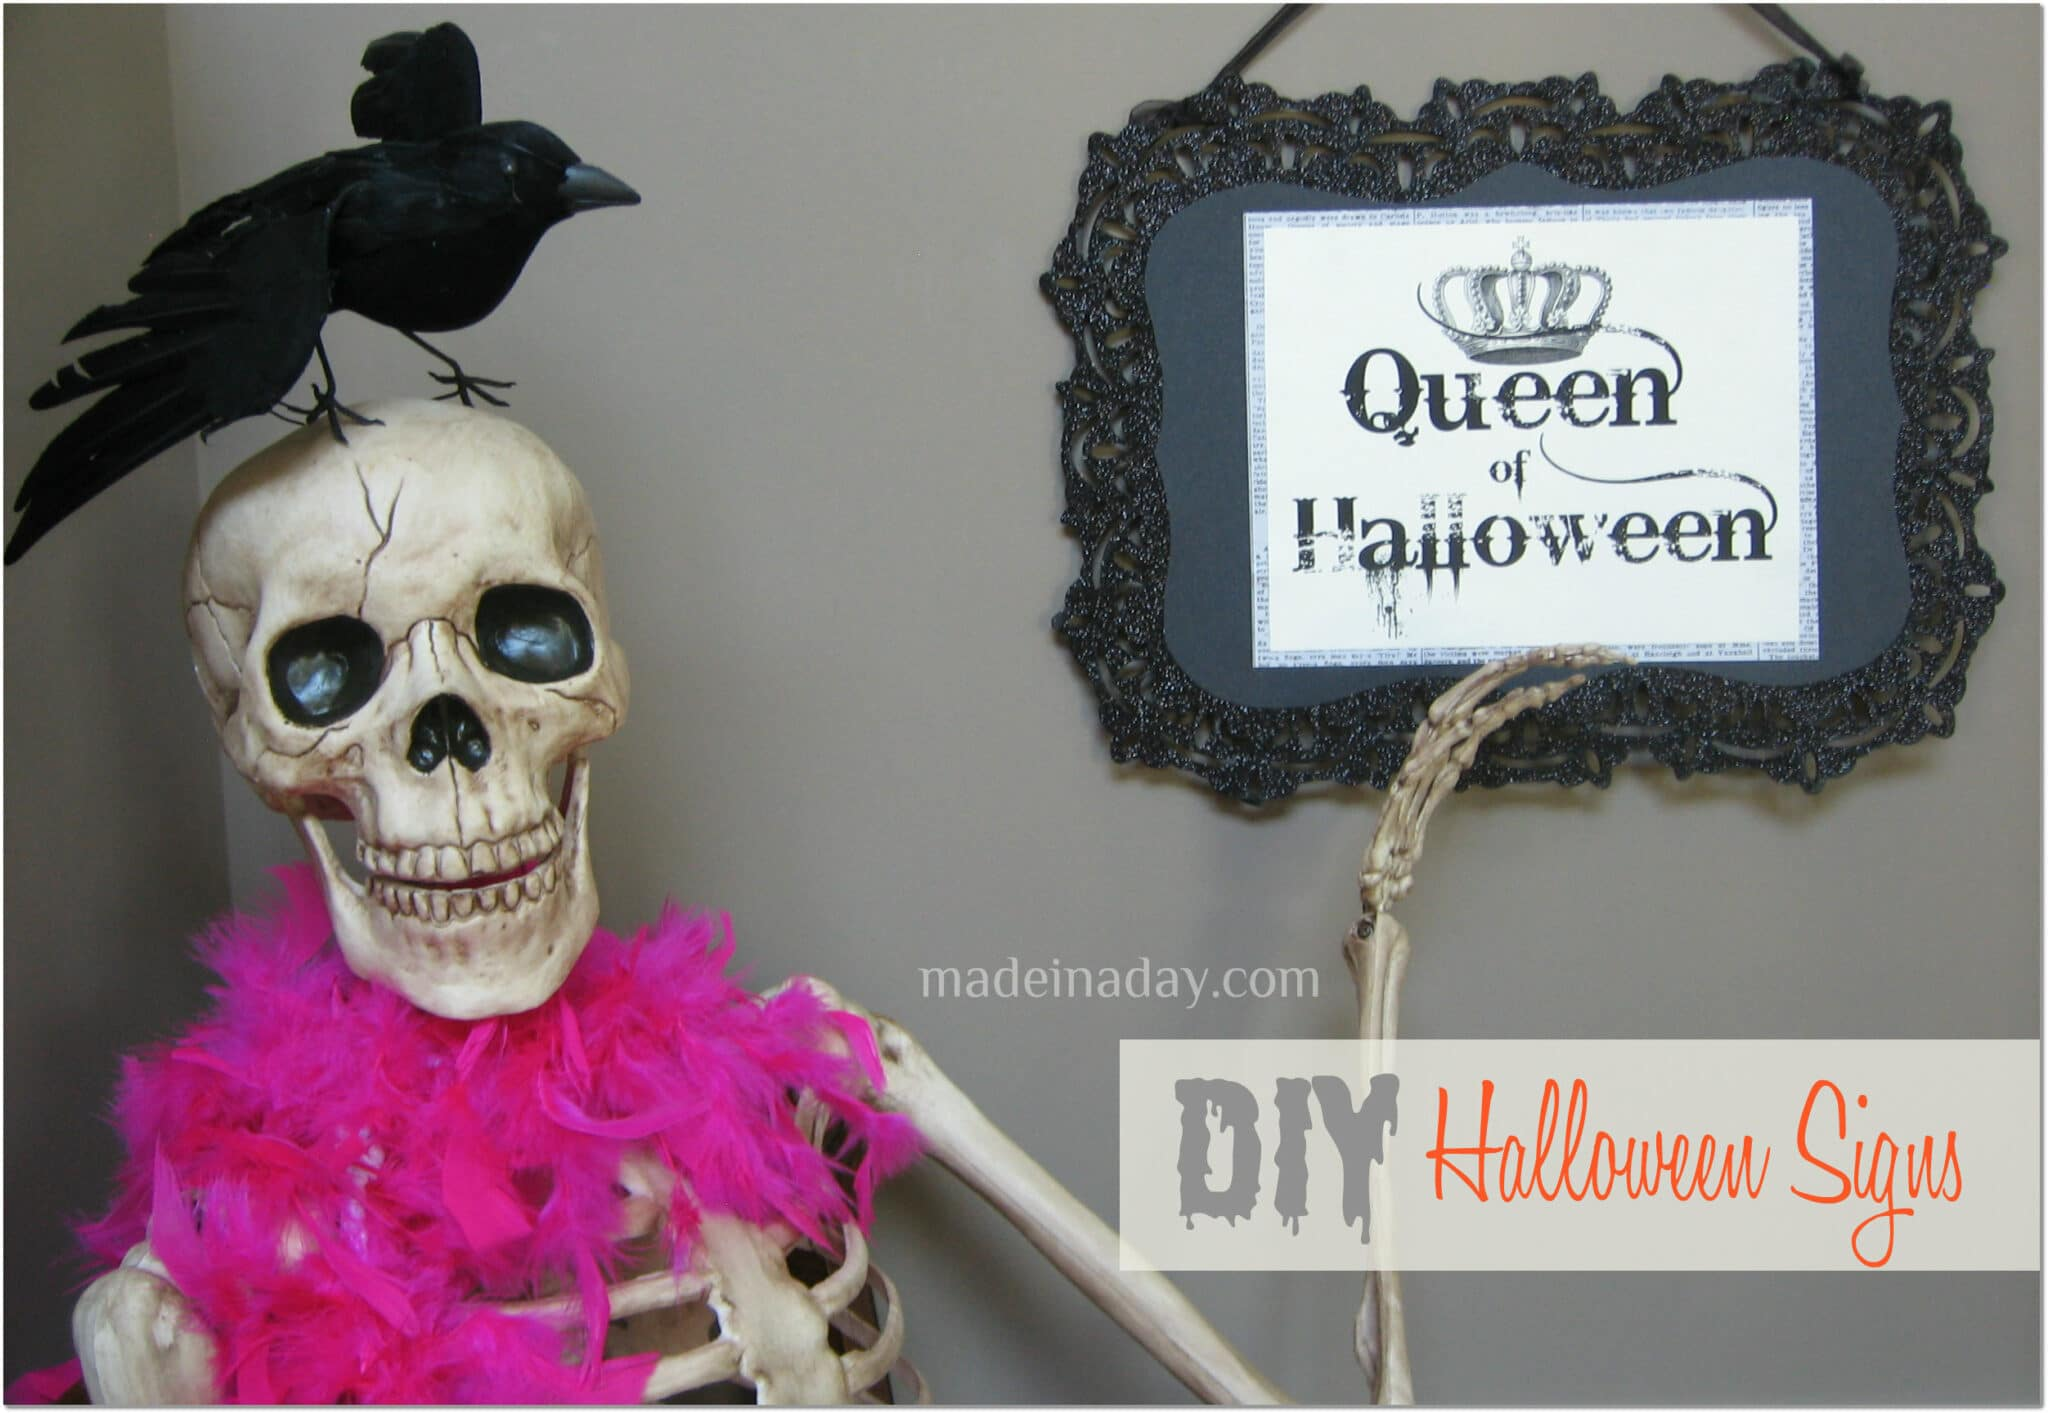 Queen of Halloween signs